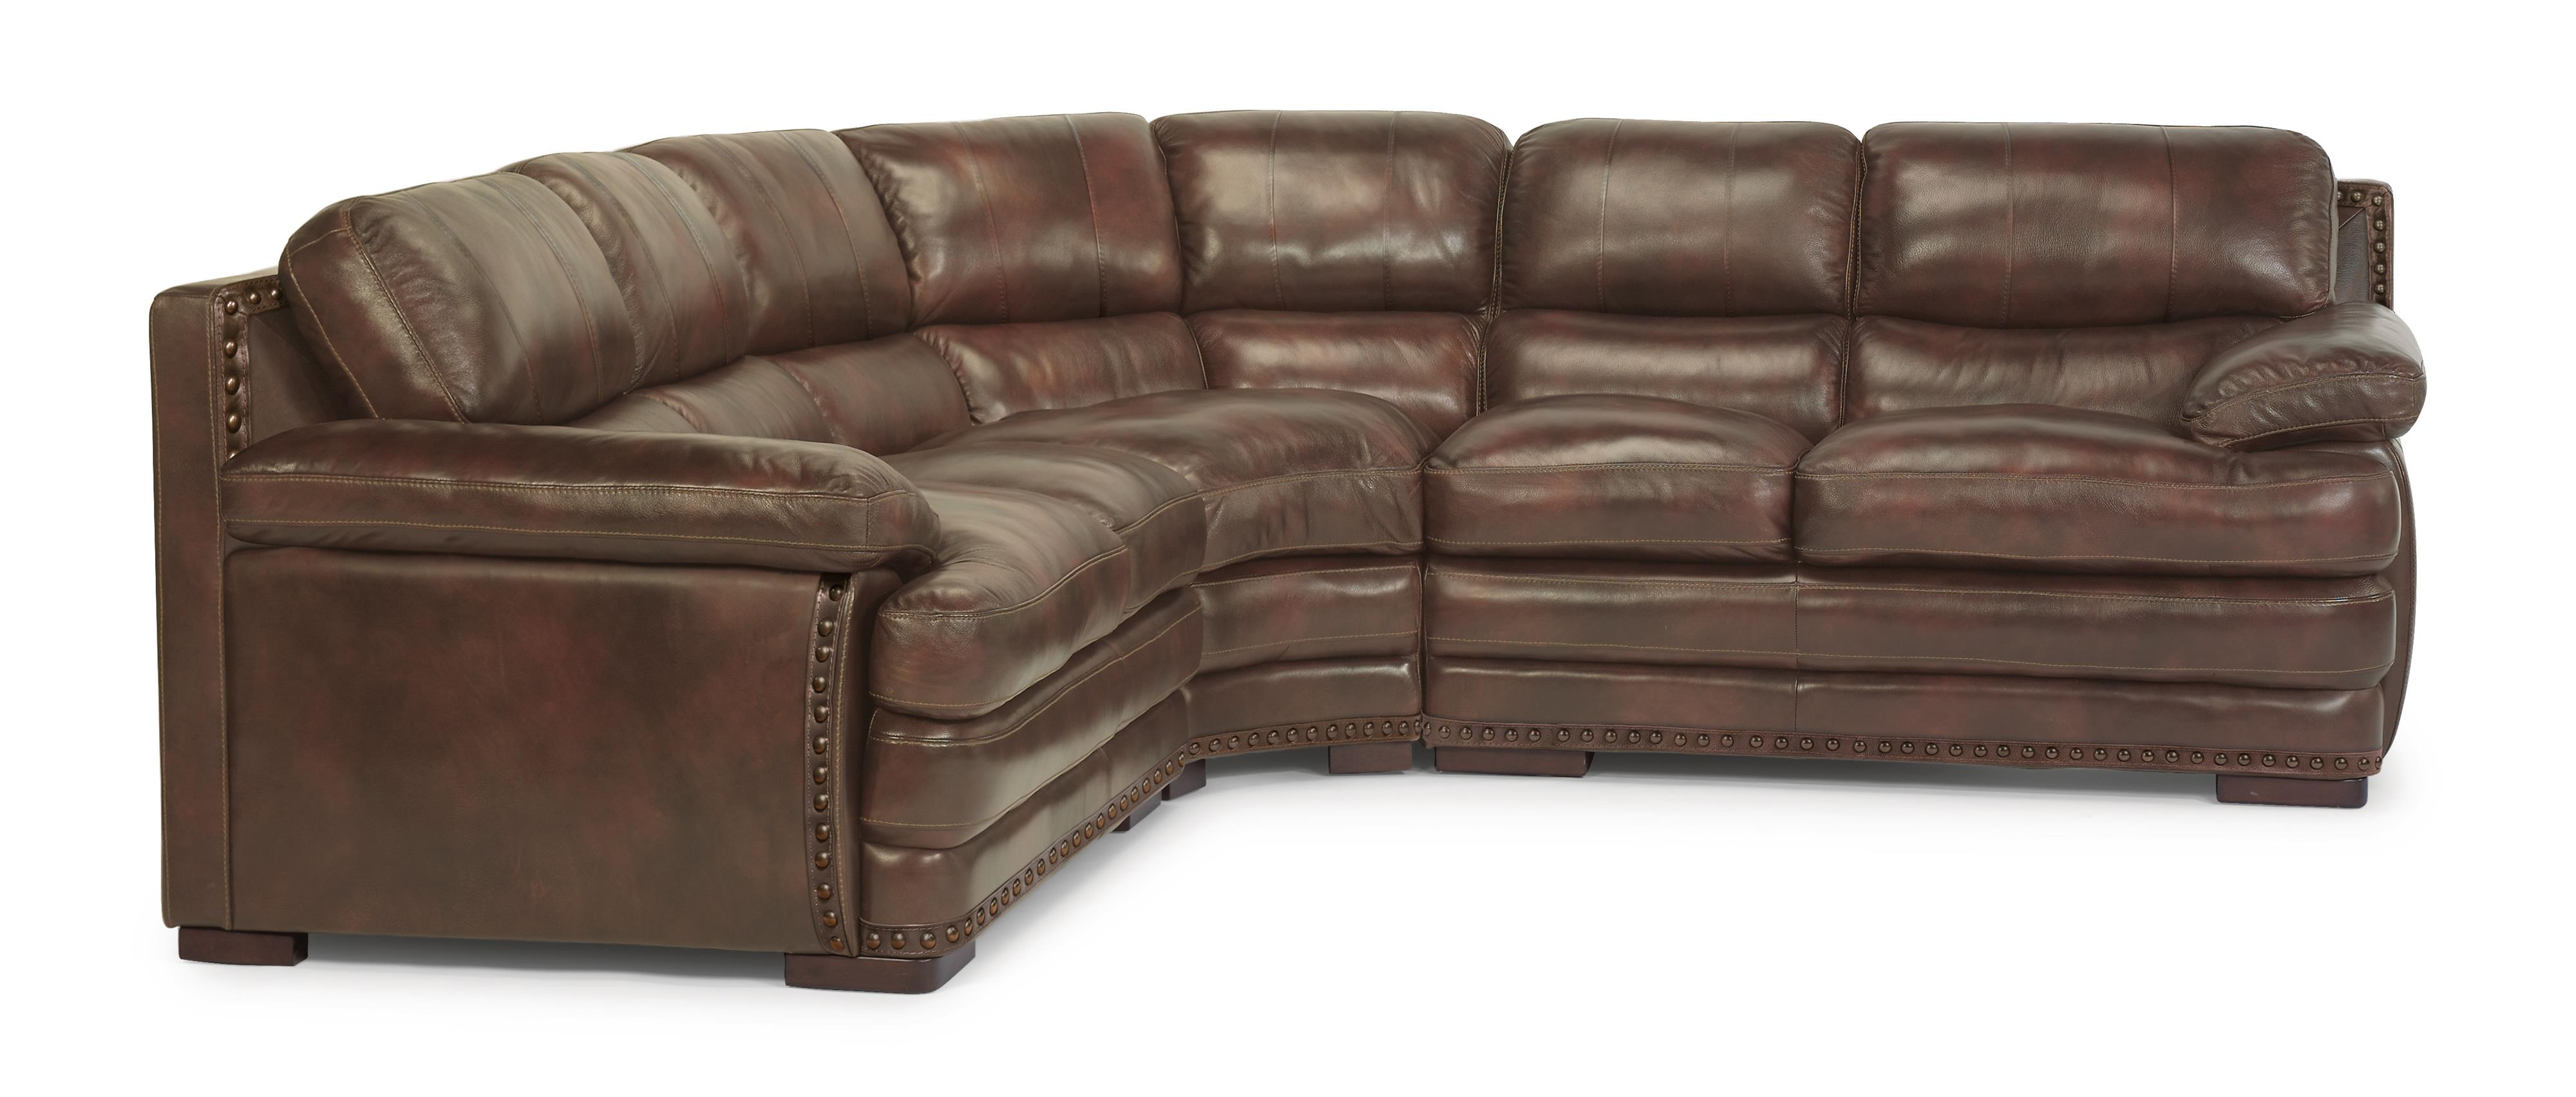 Flexsteel Latitudes - Dylan Sectional with Armless Chair & Nailheads - Item Number: 1627-33+19+28-908-72